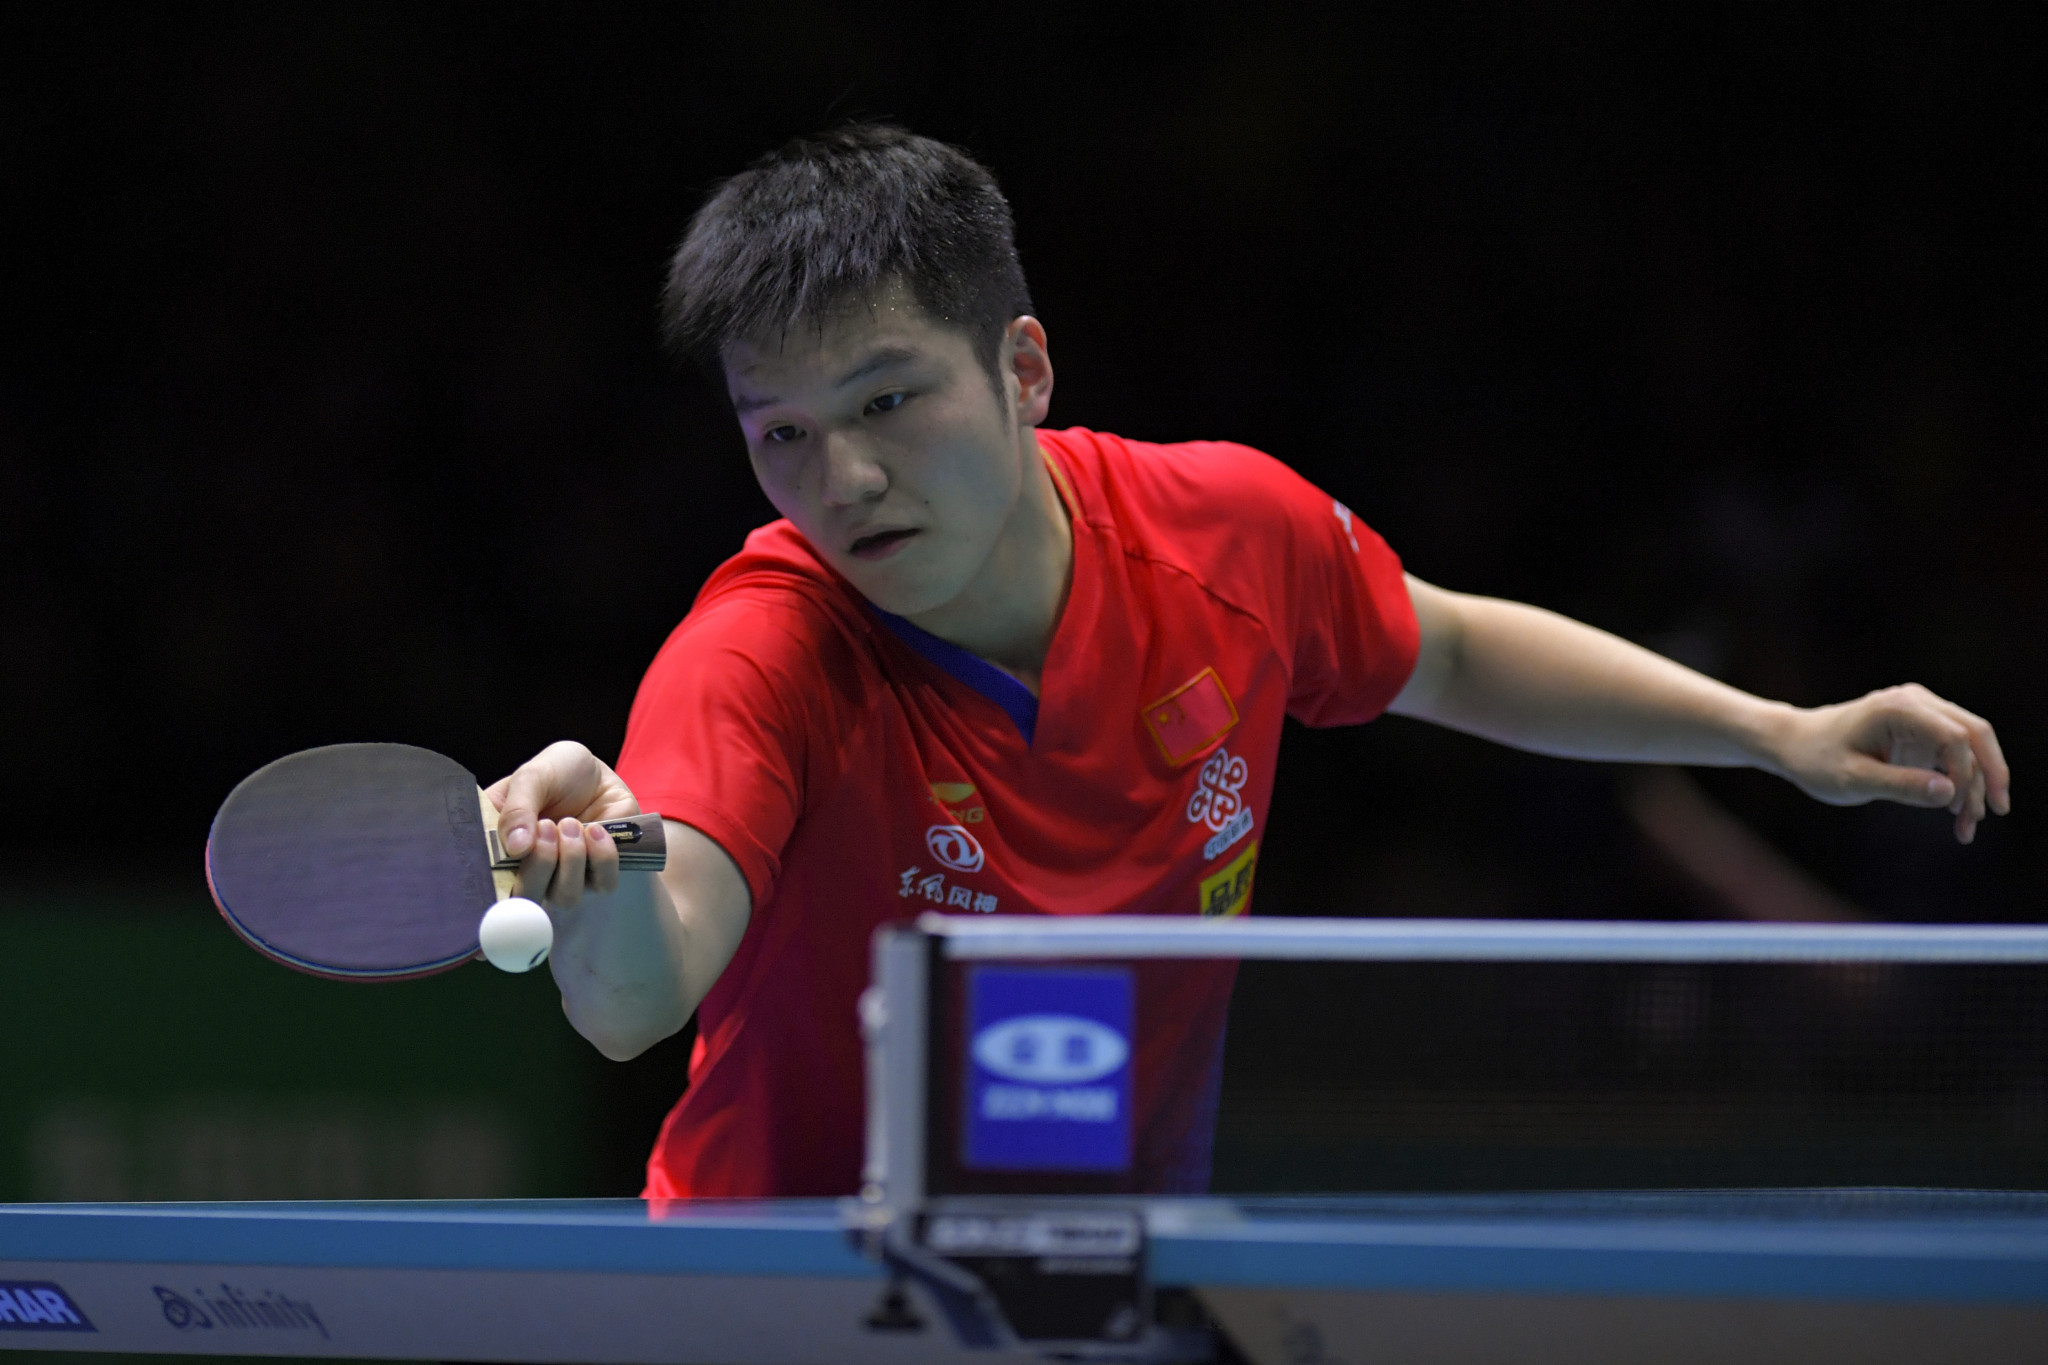 World number one Fan Zhendong progressed into the round of 16 at the ITTF German Open ©Getty Images